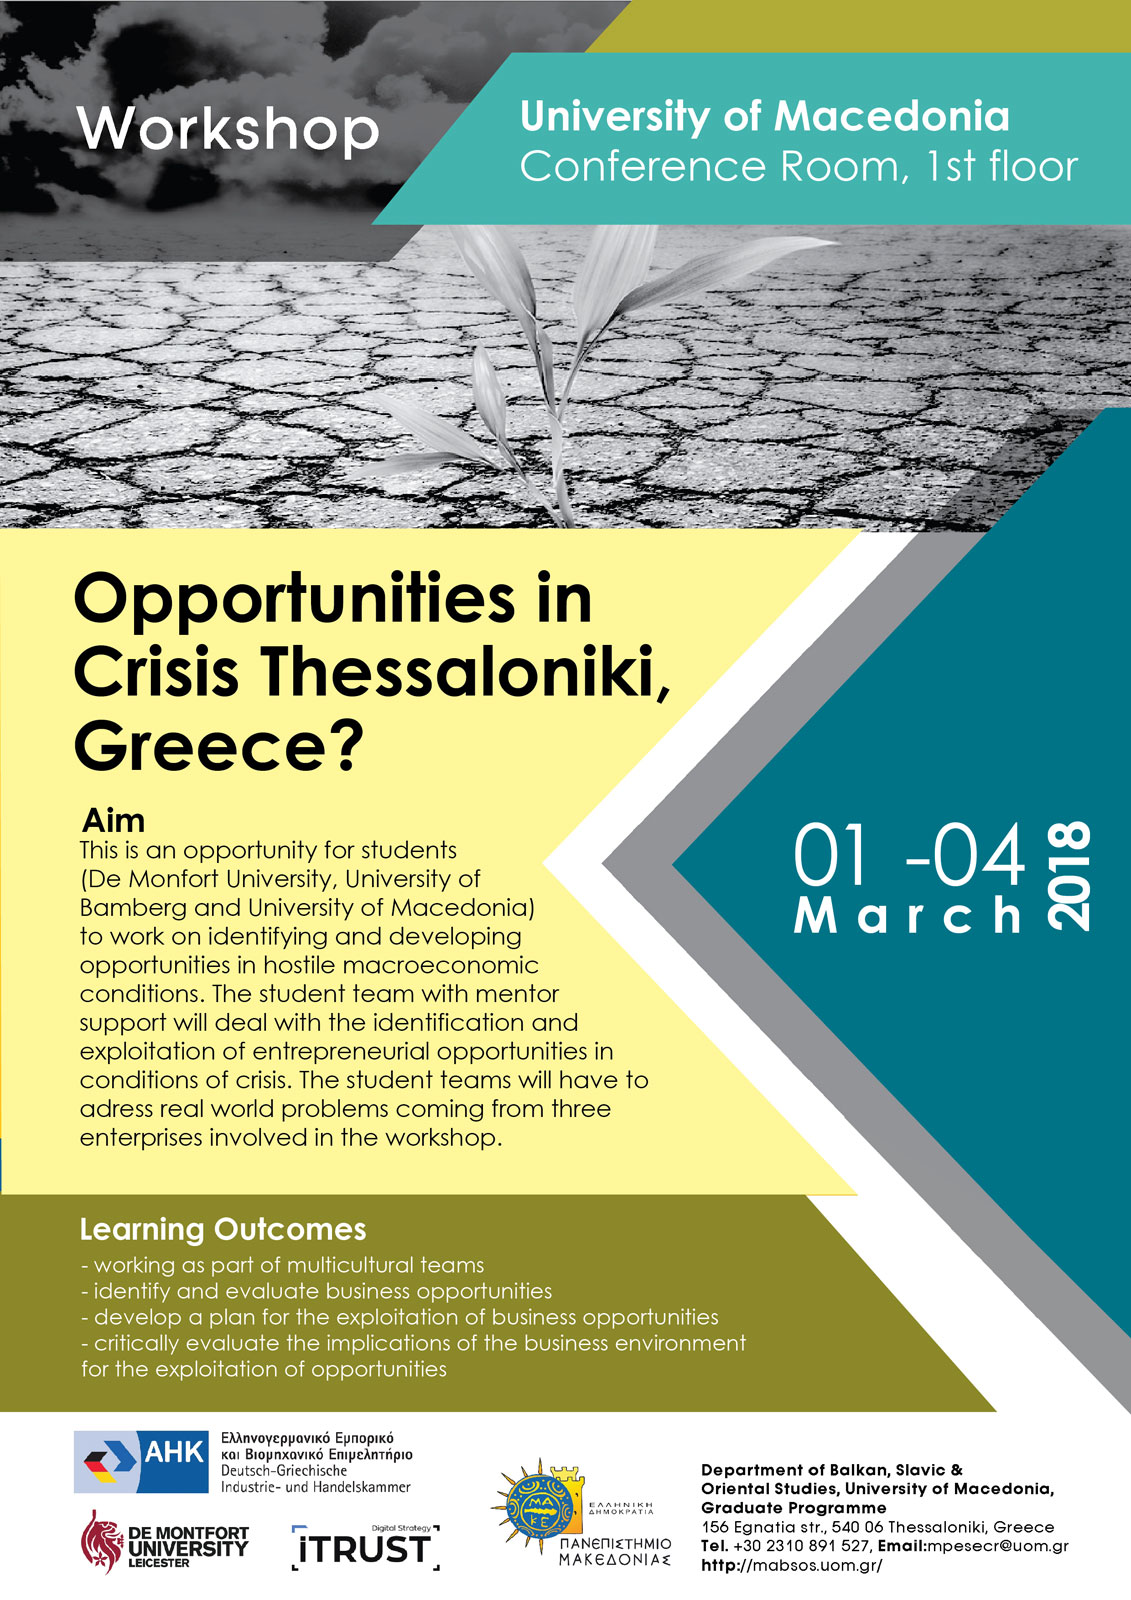 Opportunities in Crisis Thessaloniki, Greece?